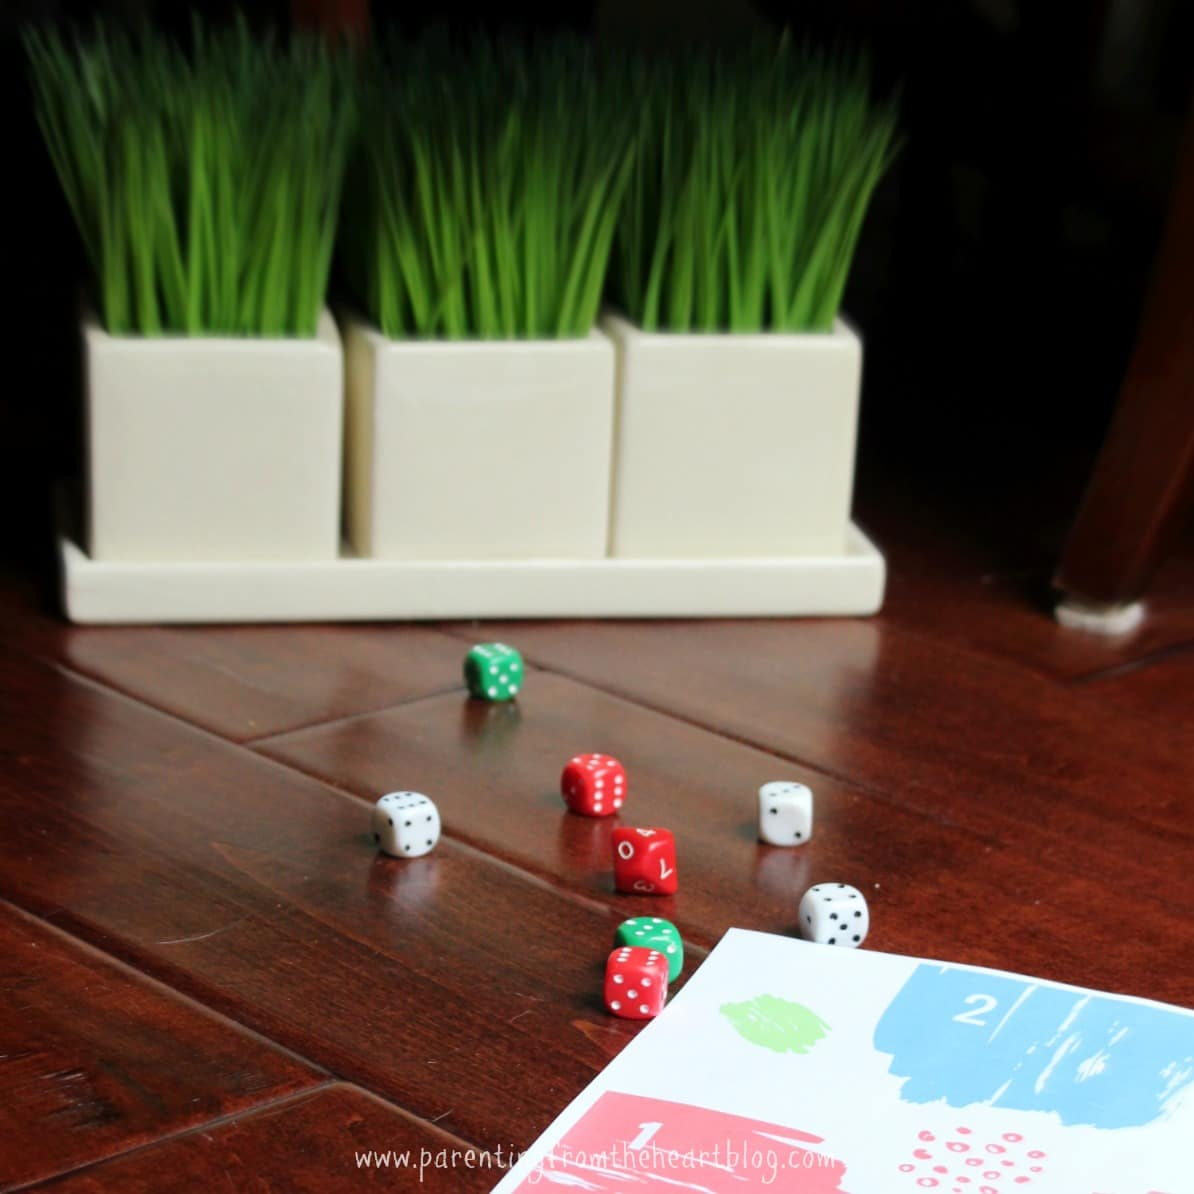 Dice Games For Preschoolers Fun Ways To Promote Numeracy